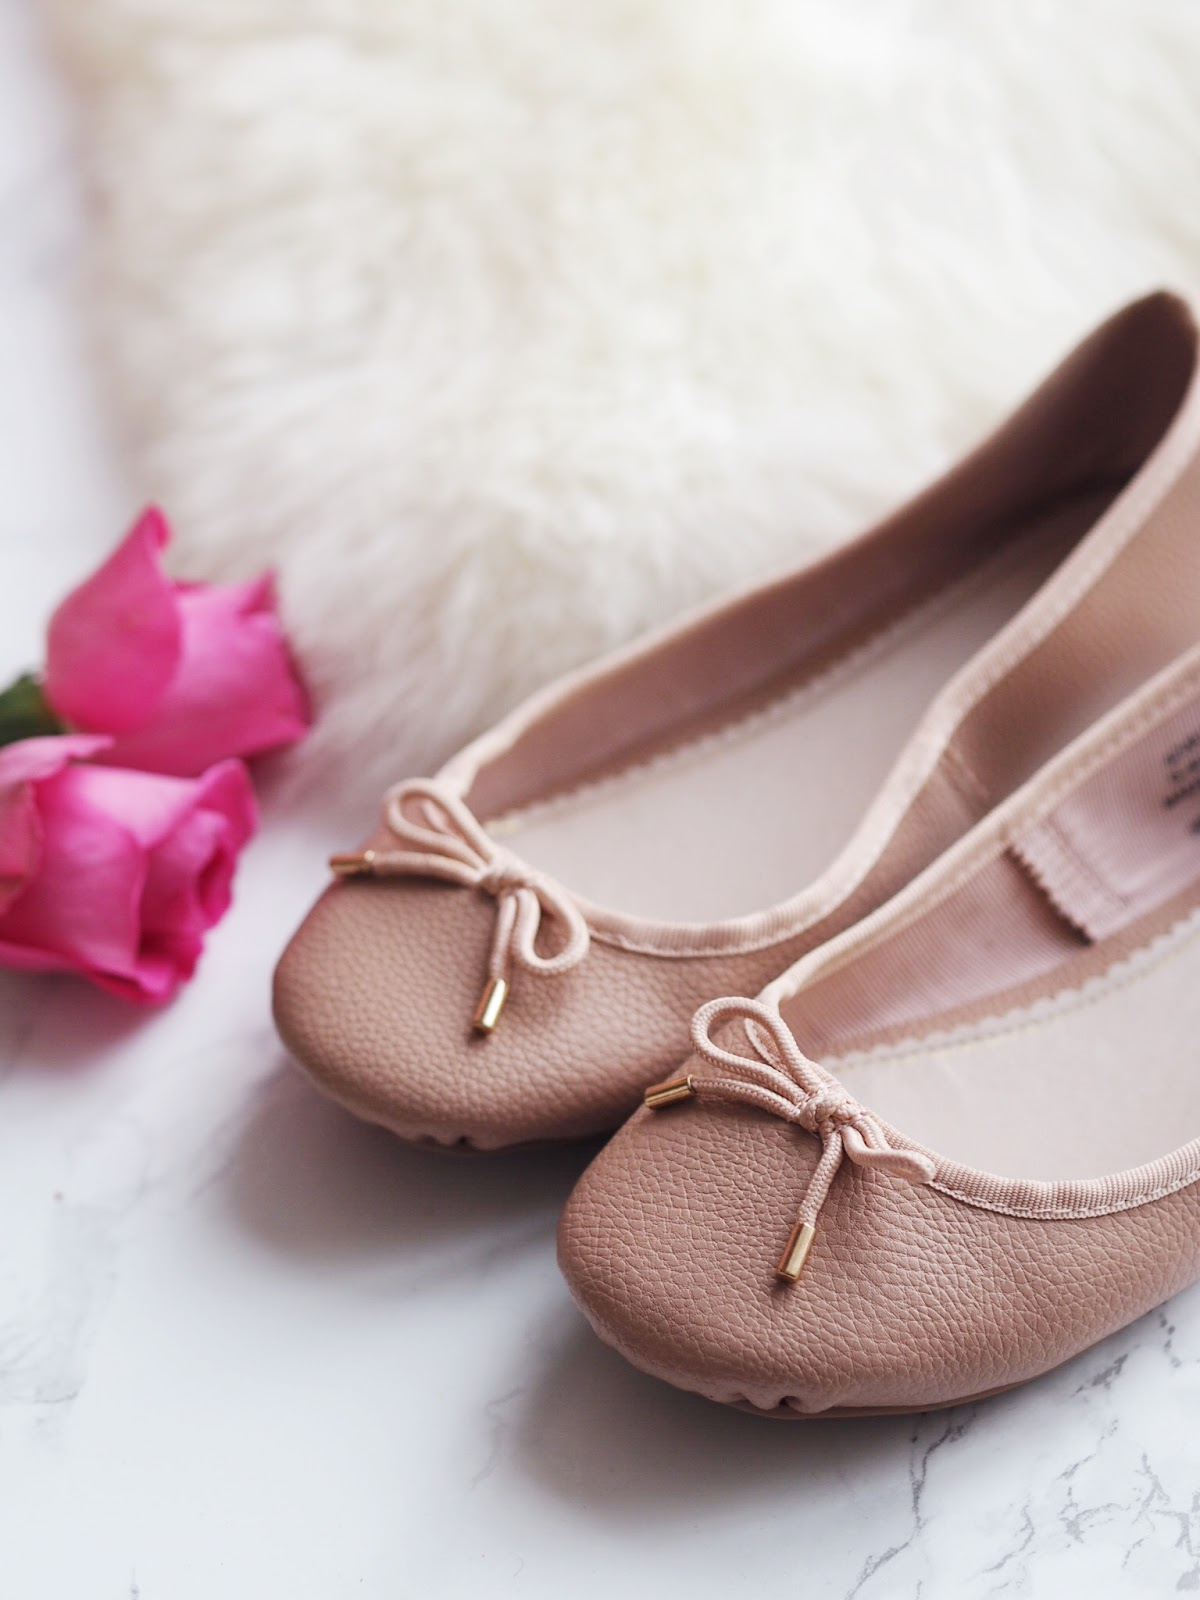 Summer Shoe Staples Topshop Nude Pink Ballet Slipper Shoes